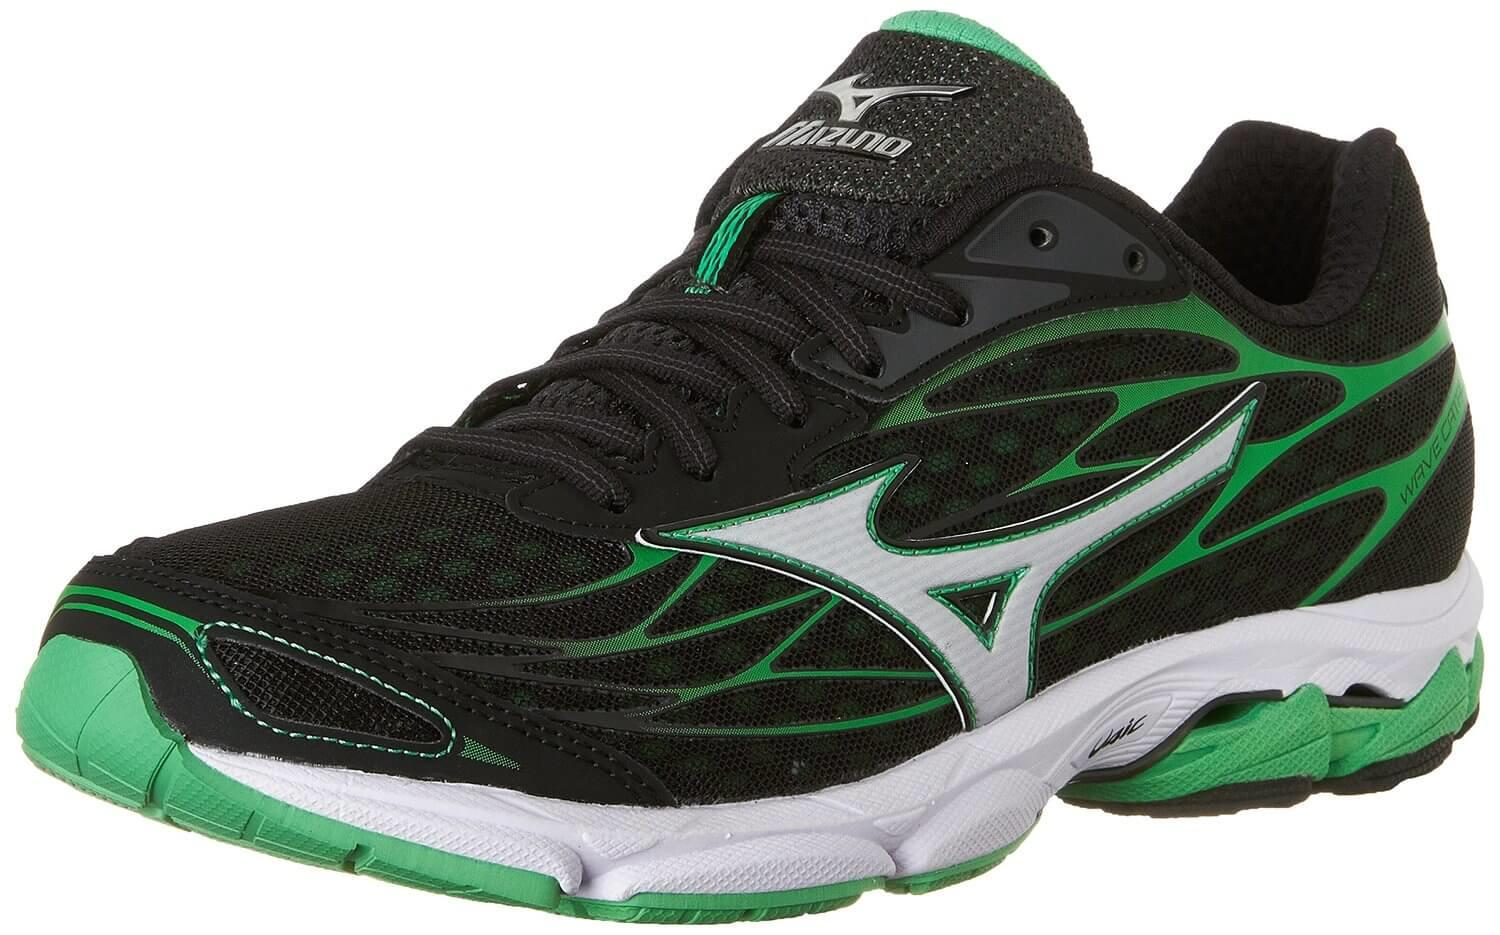 0b827d8c35 The Mizuno Wave Catalyst was inspired by the desire to encourage the  promotion of sports.